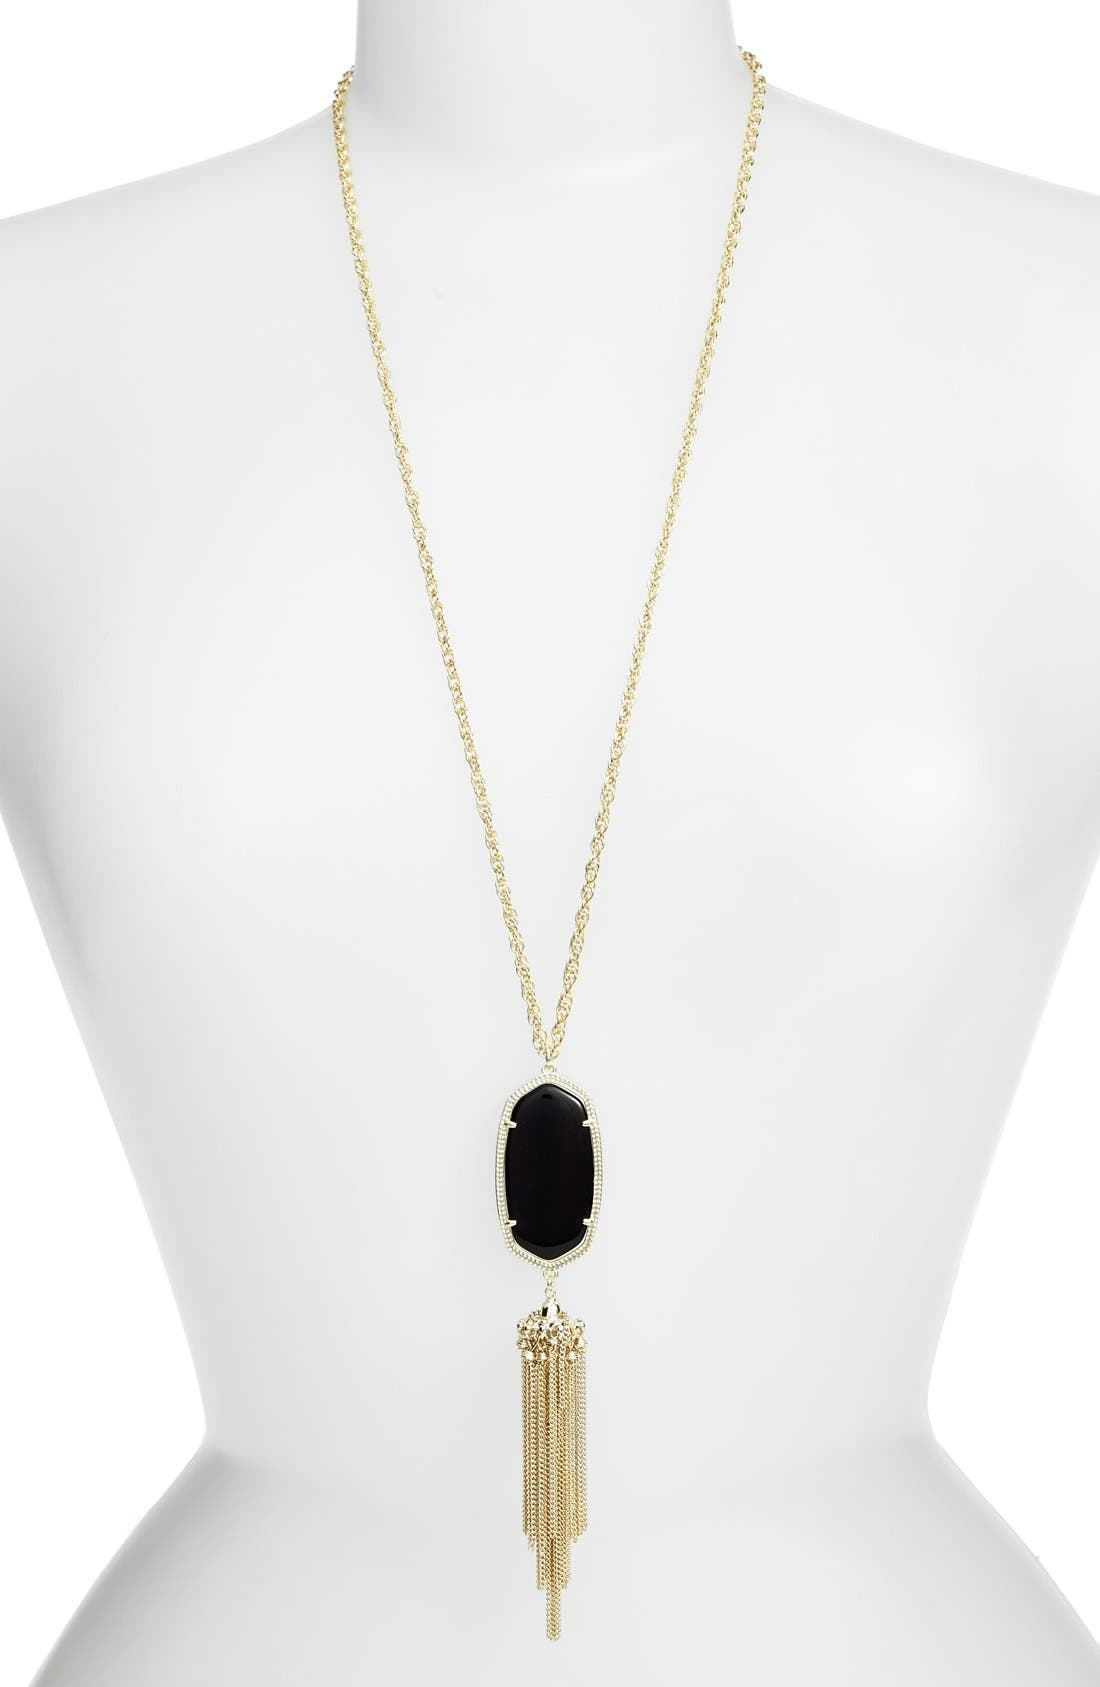 Rayne Stone Tassel Pendant Necklace,                         Main,                         color, 001